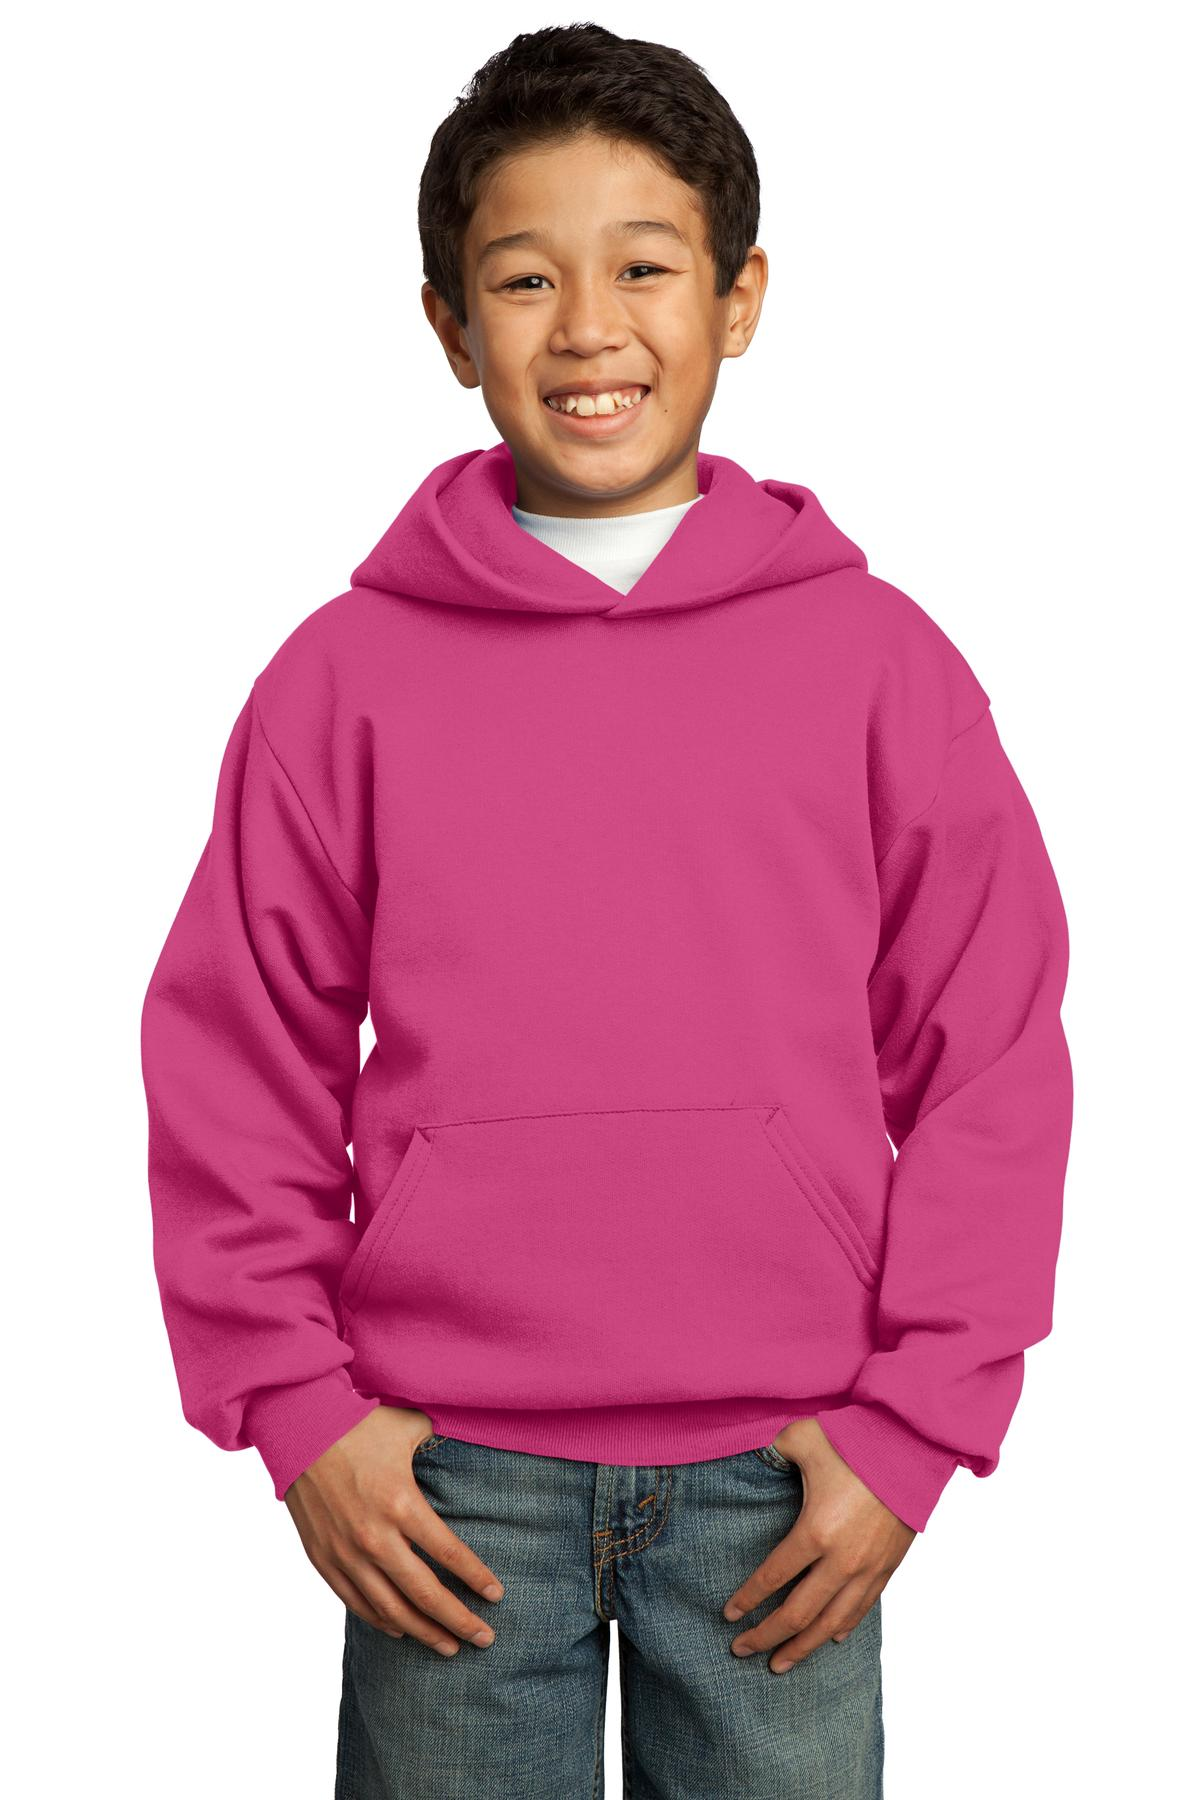 Sangria Port & Company - Youth Core Fleece Pullover Hooded Sweatshirt.